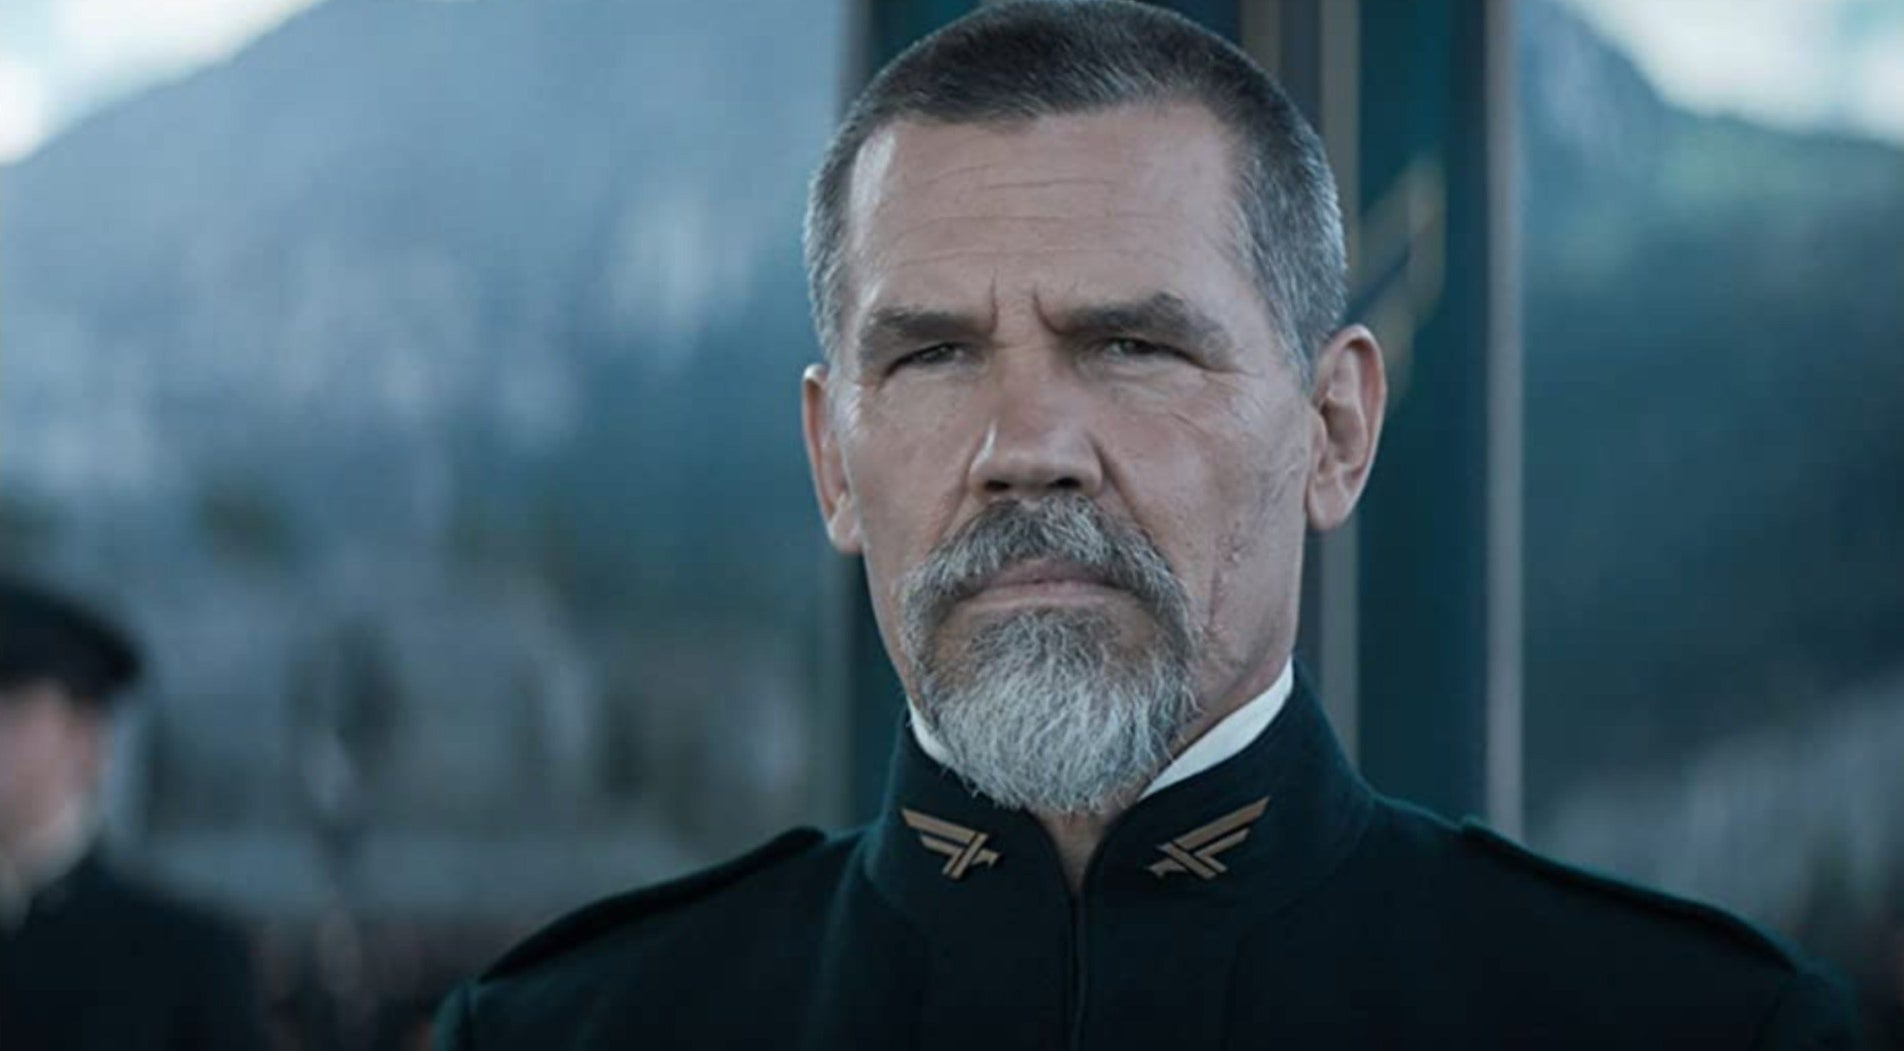 """Josh in a still from """"Dune,"""" he sports a full goatee and black general uniform"""